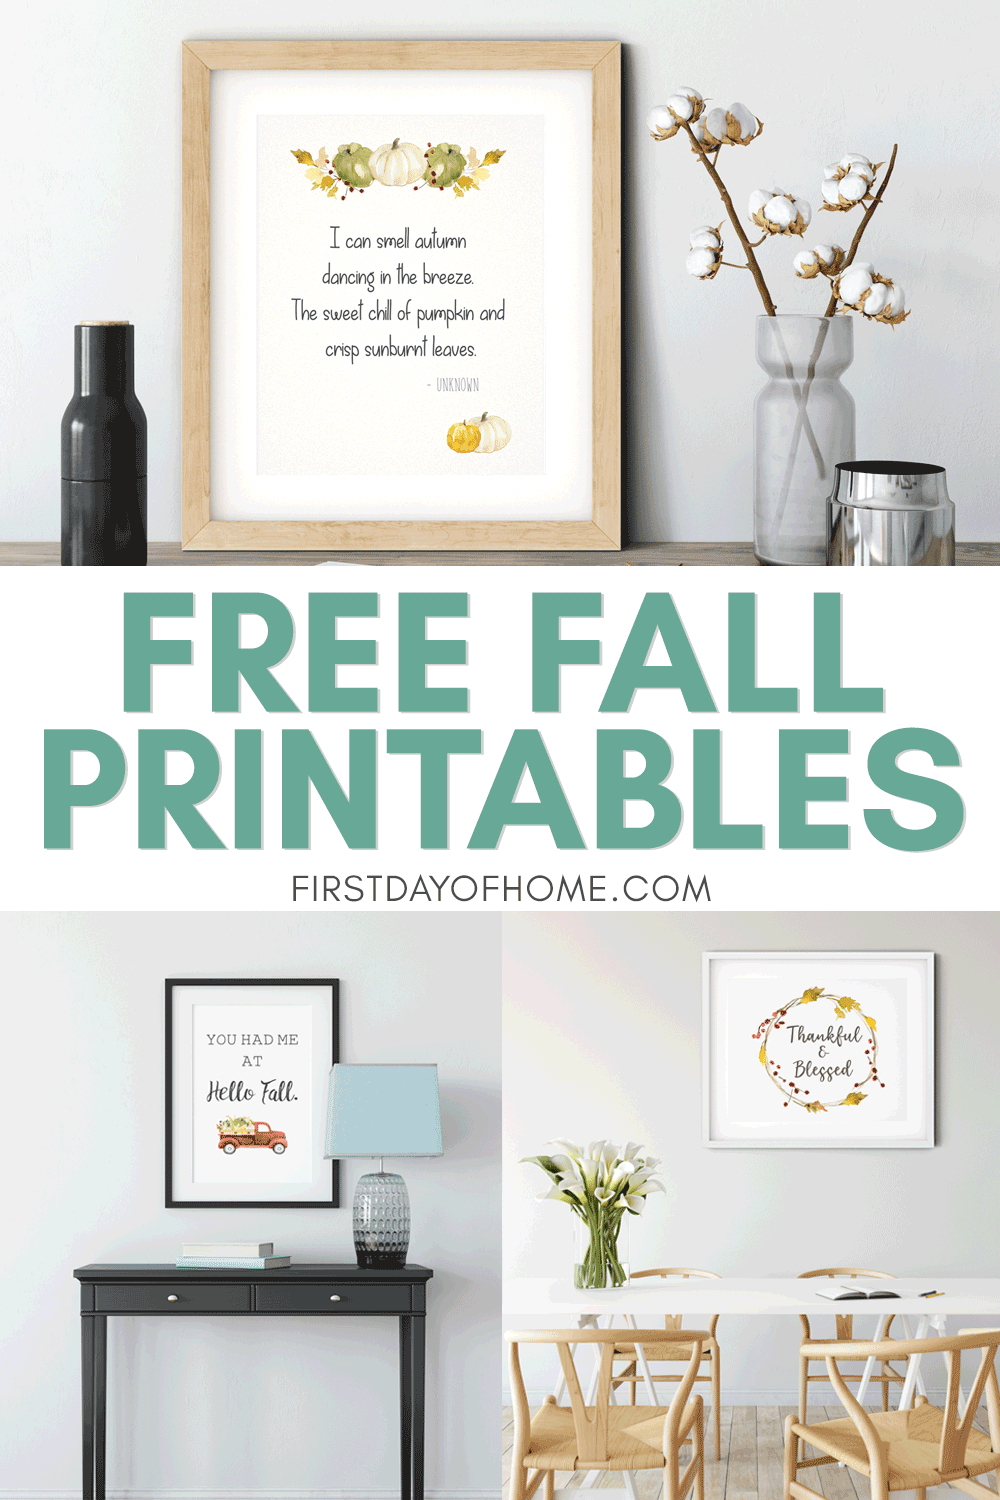 Free fall printables - farmhouse style watercolor prints hanging on walls